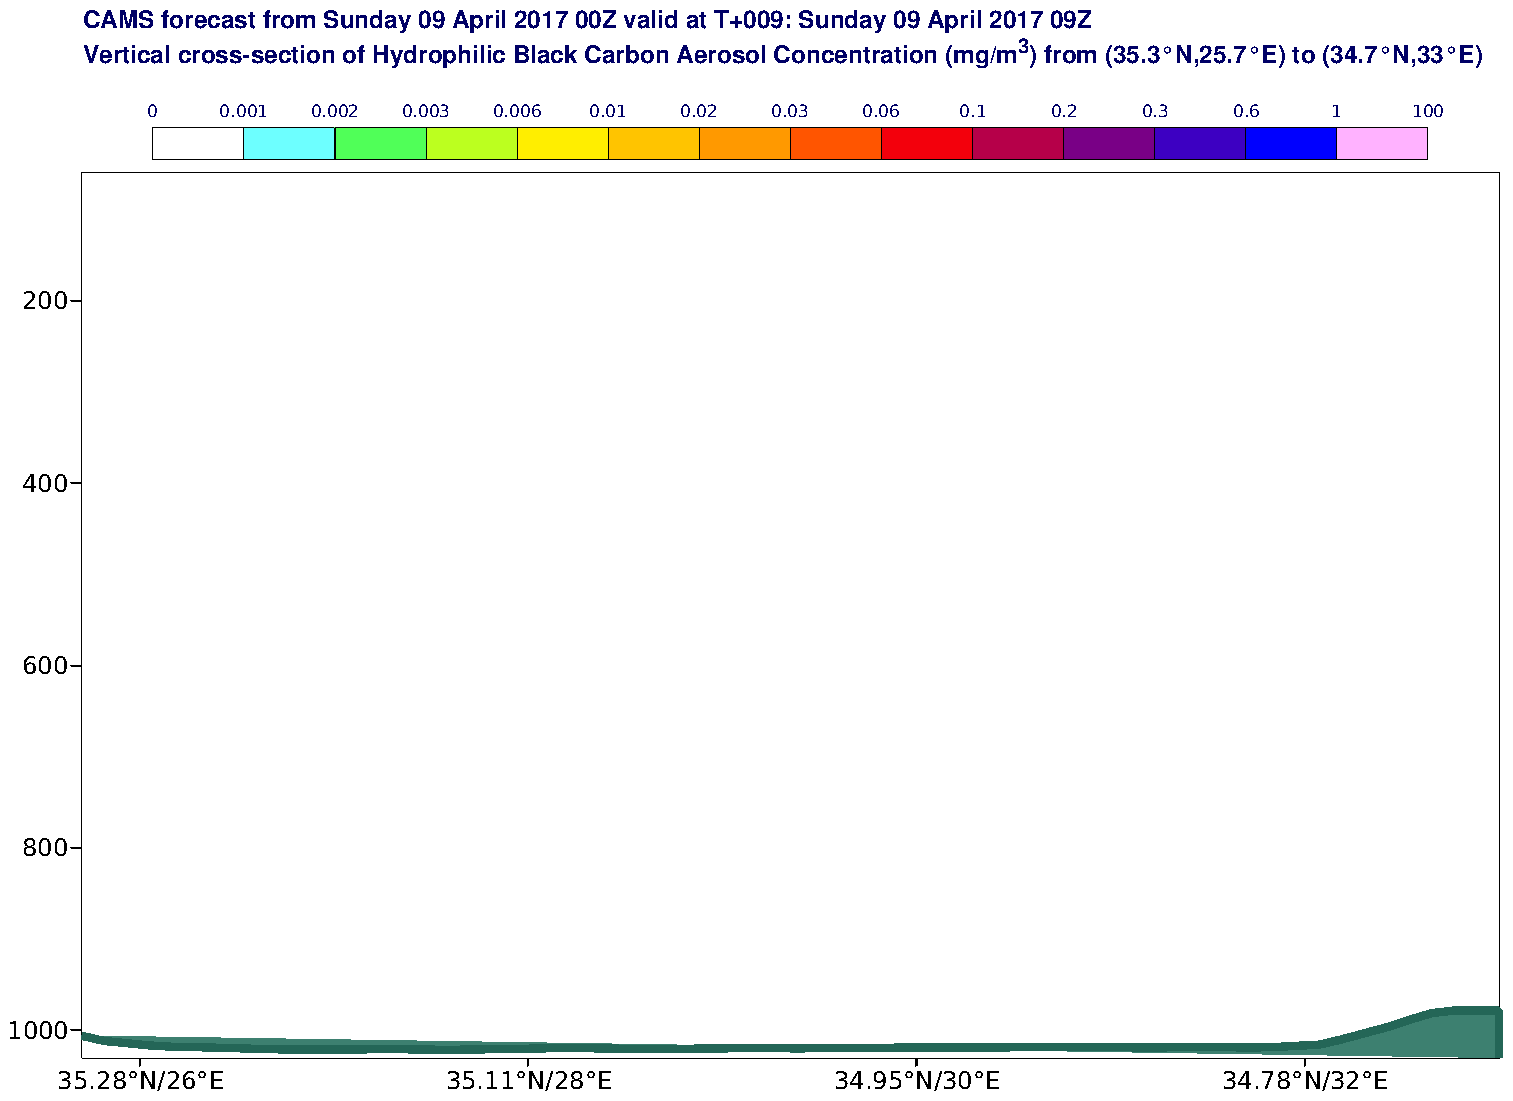 Vertical cross-section of Hydrophilic Black Carbon Aerosol Concentration (mg/m3) valid at T9 - 2017-04-09 09:00